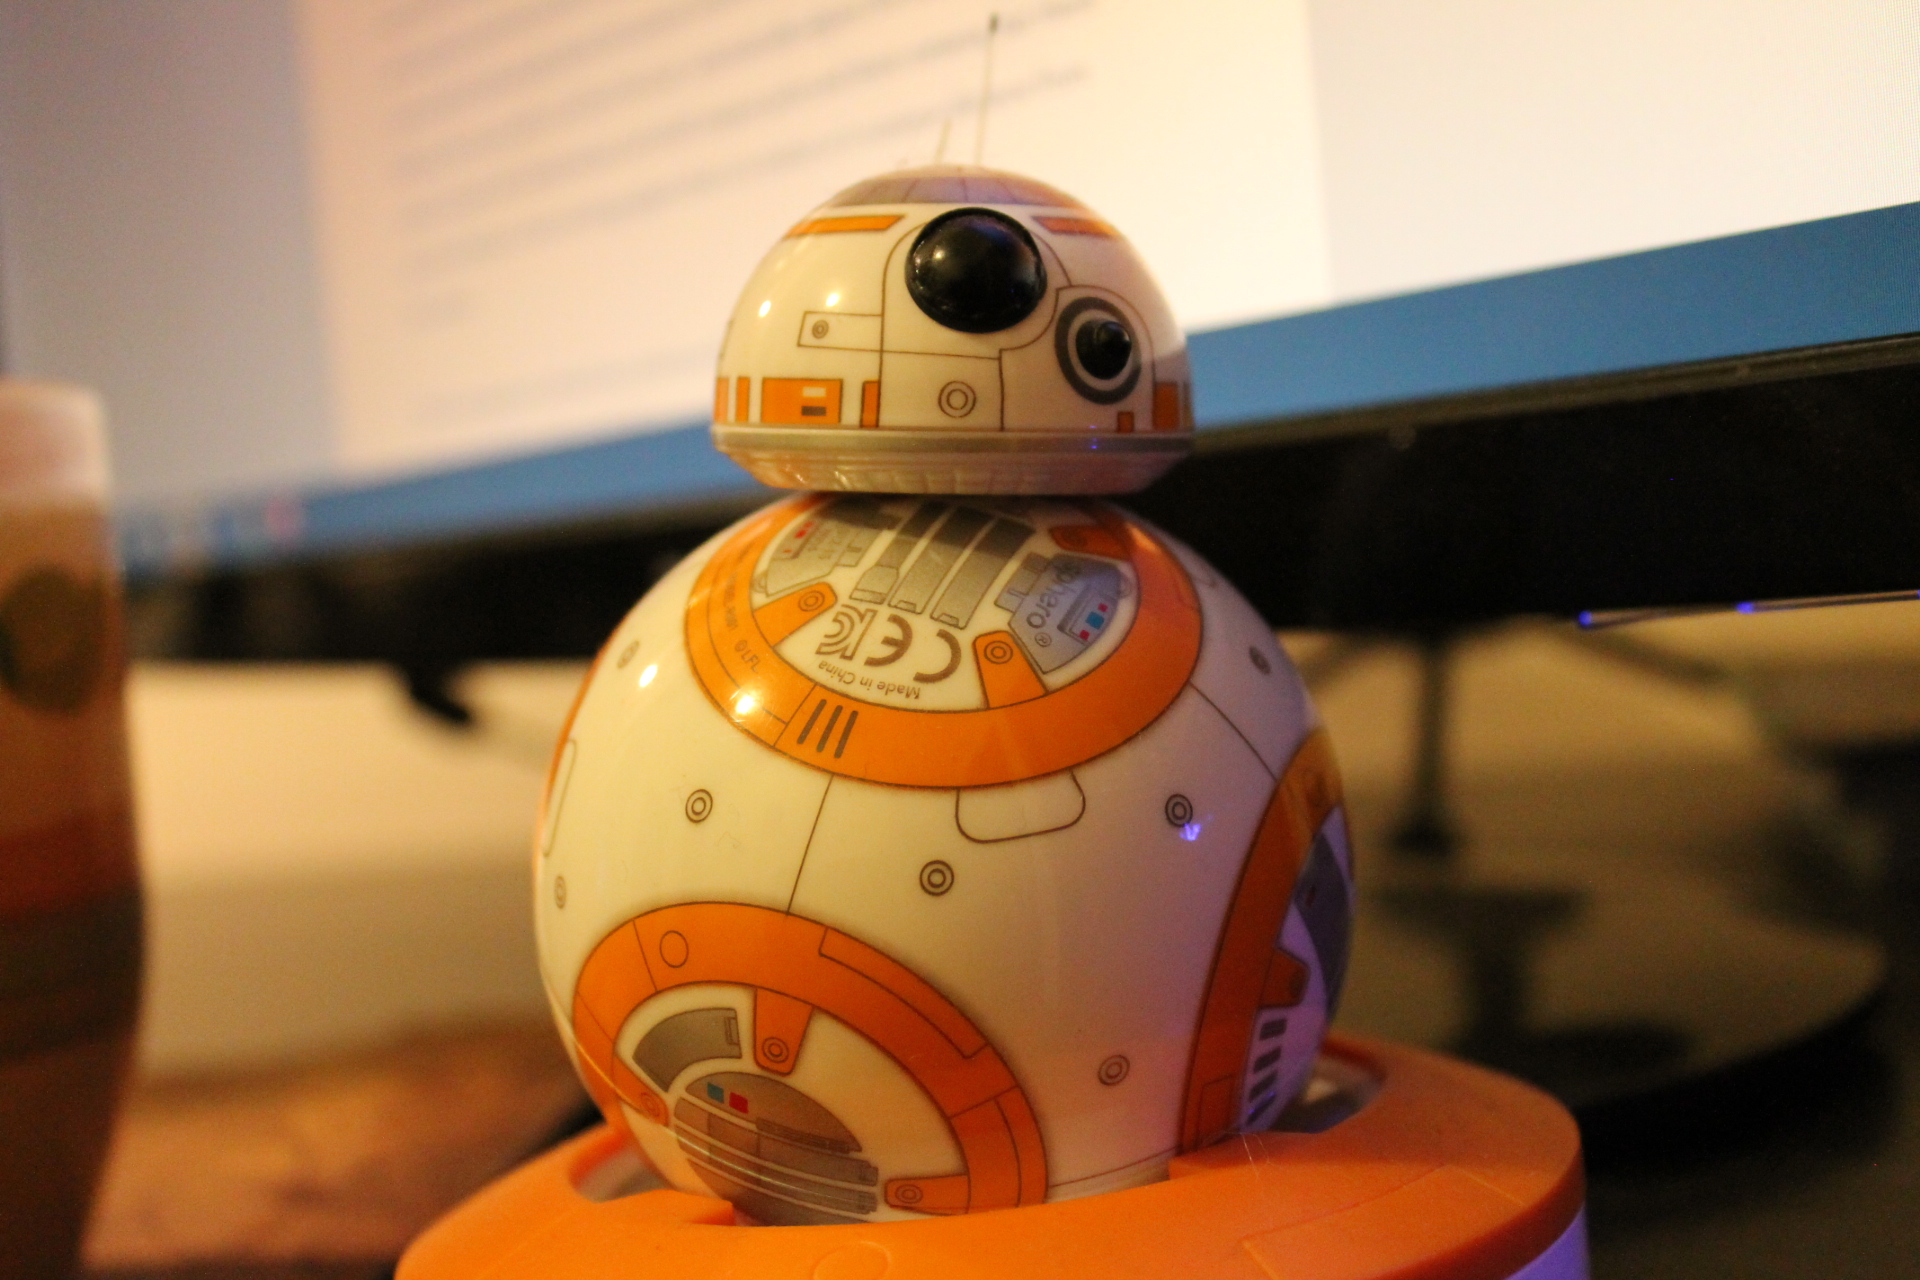 Notice the depth of field image, crispy BB-8 Droid up close,fuzzy back ground